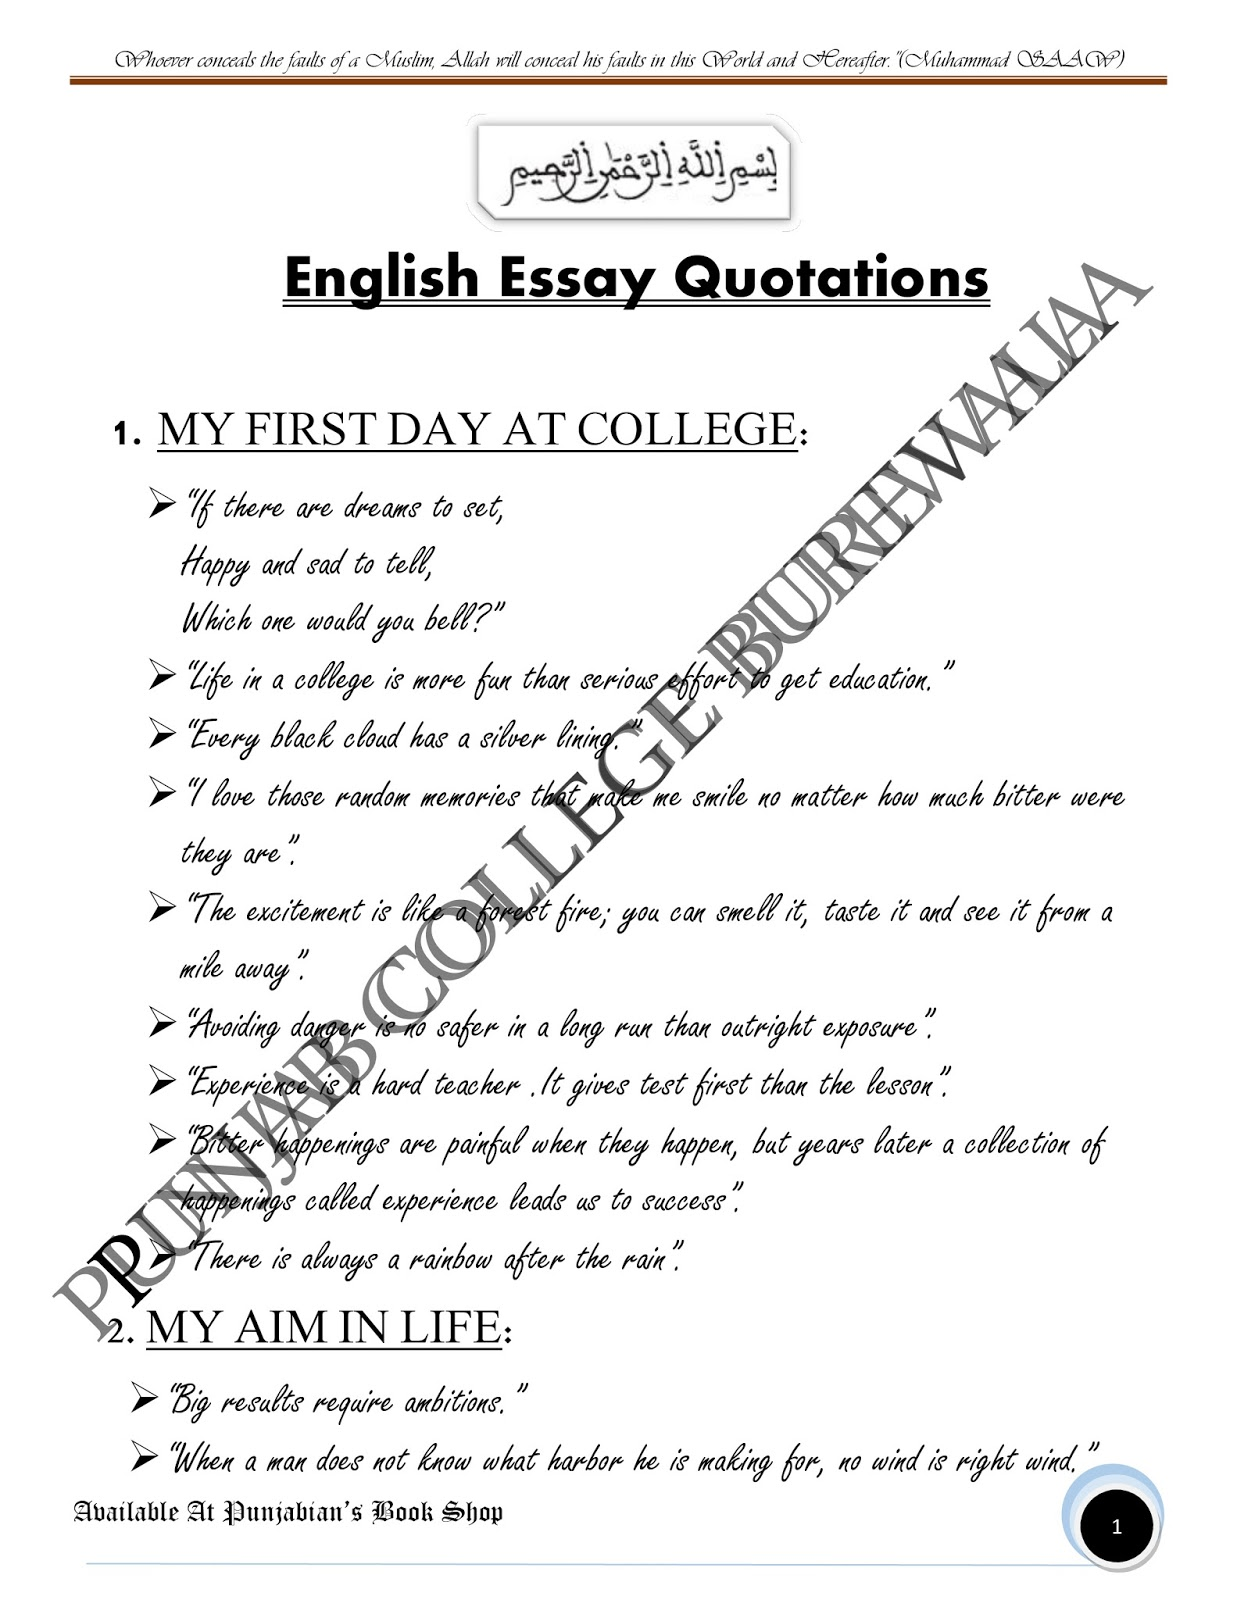 Good Science Essay Topics All Exam Soloutions And Notes English Paper Quotes English Paper   Quotes My Favourite Hobby Essay  Essays Written By High School Students also Essay On Science Essay My Hobby Essay On My Hobby Book Reading All Exam Soloutions  Essays About English Language